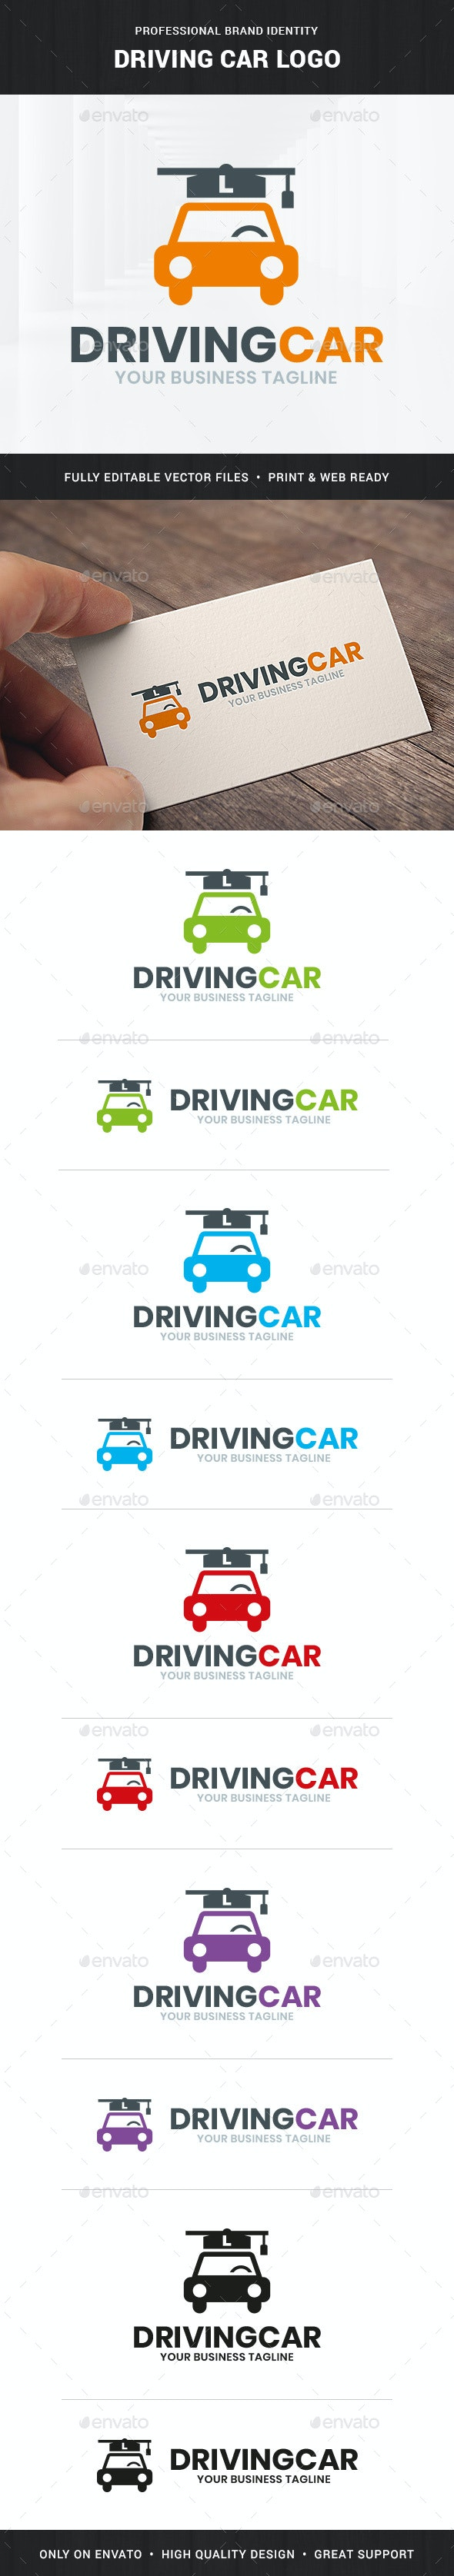 Driving School Logo Template - Objects Logo Templates